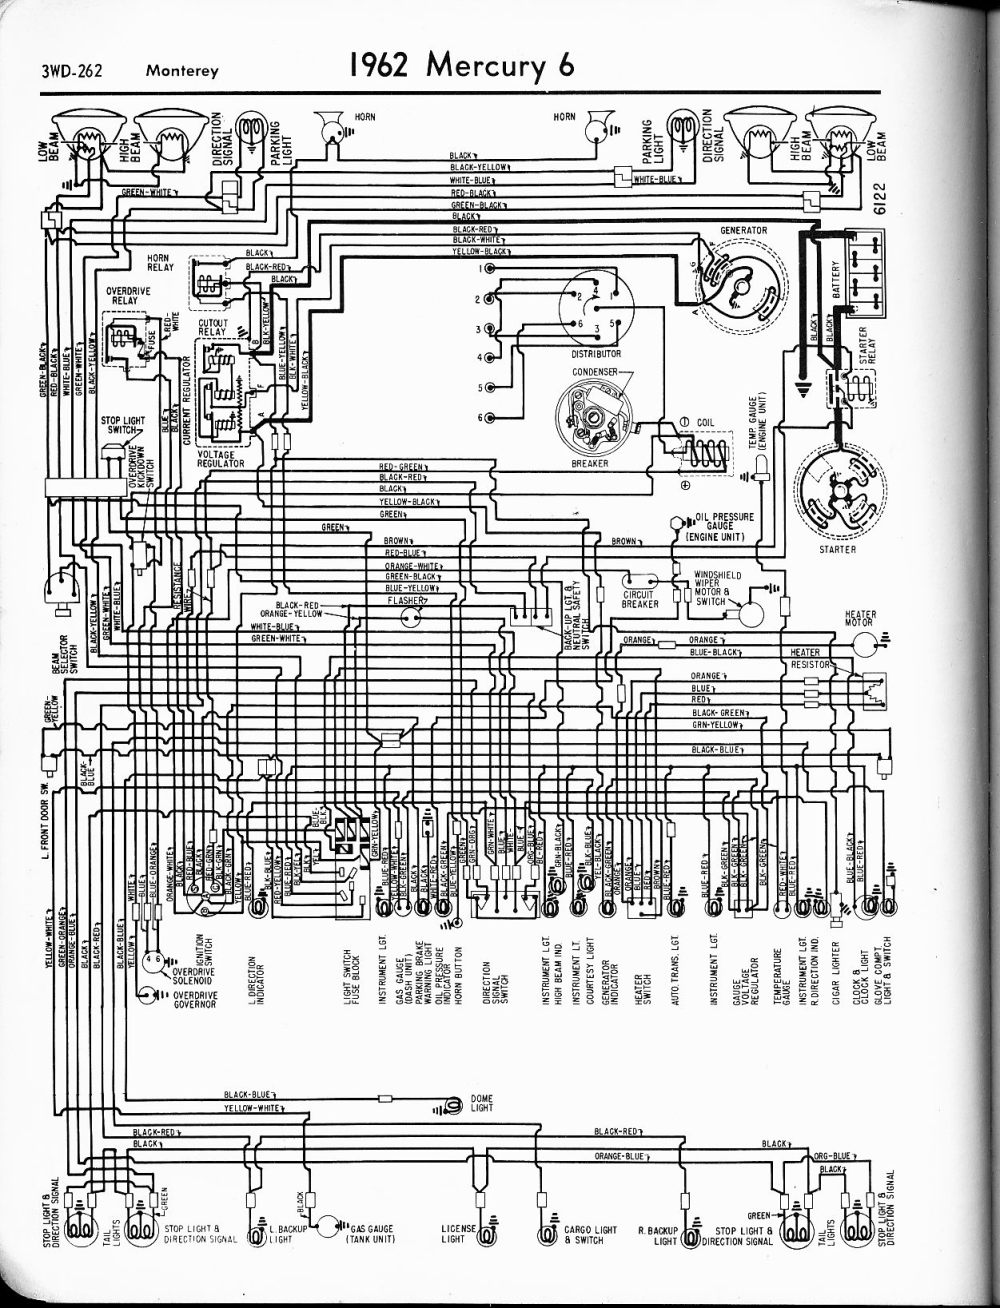 medium resolution of 1962 6 monterey mercury wiring diagrams the old car manual project 1962 6 monterey 1970 chevy truck ignition